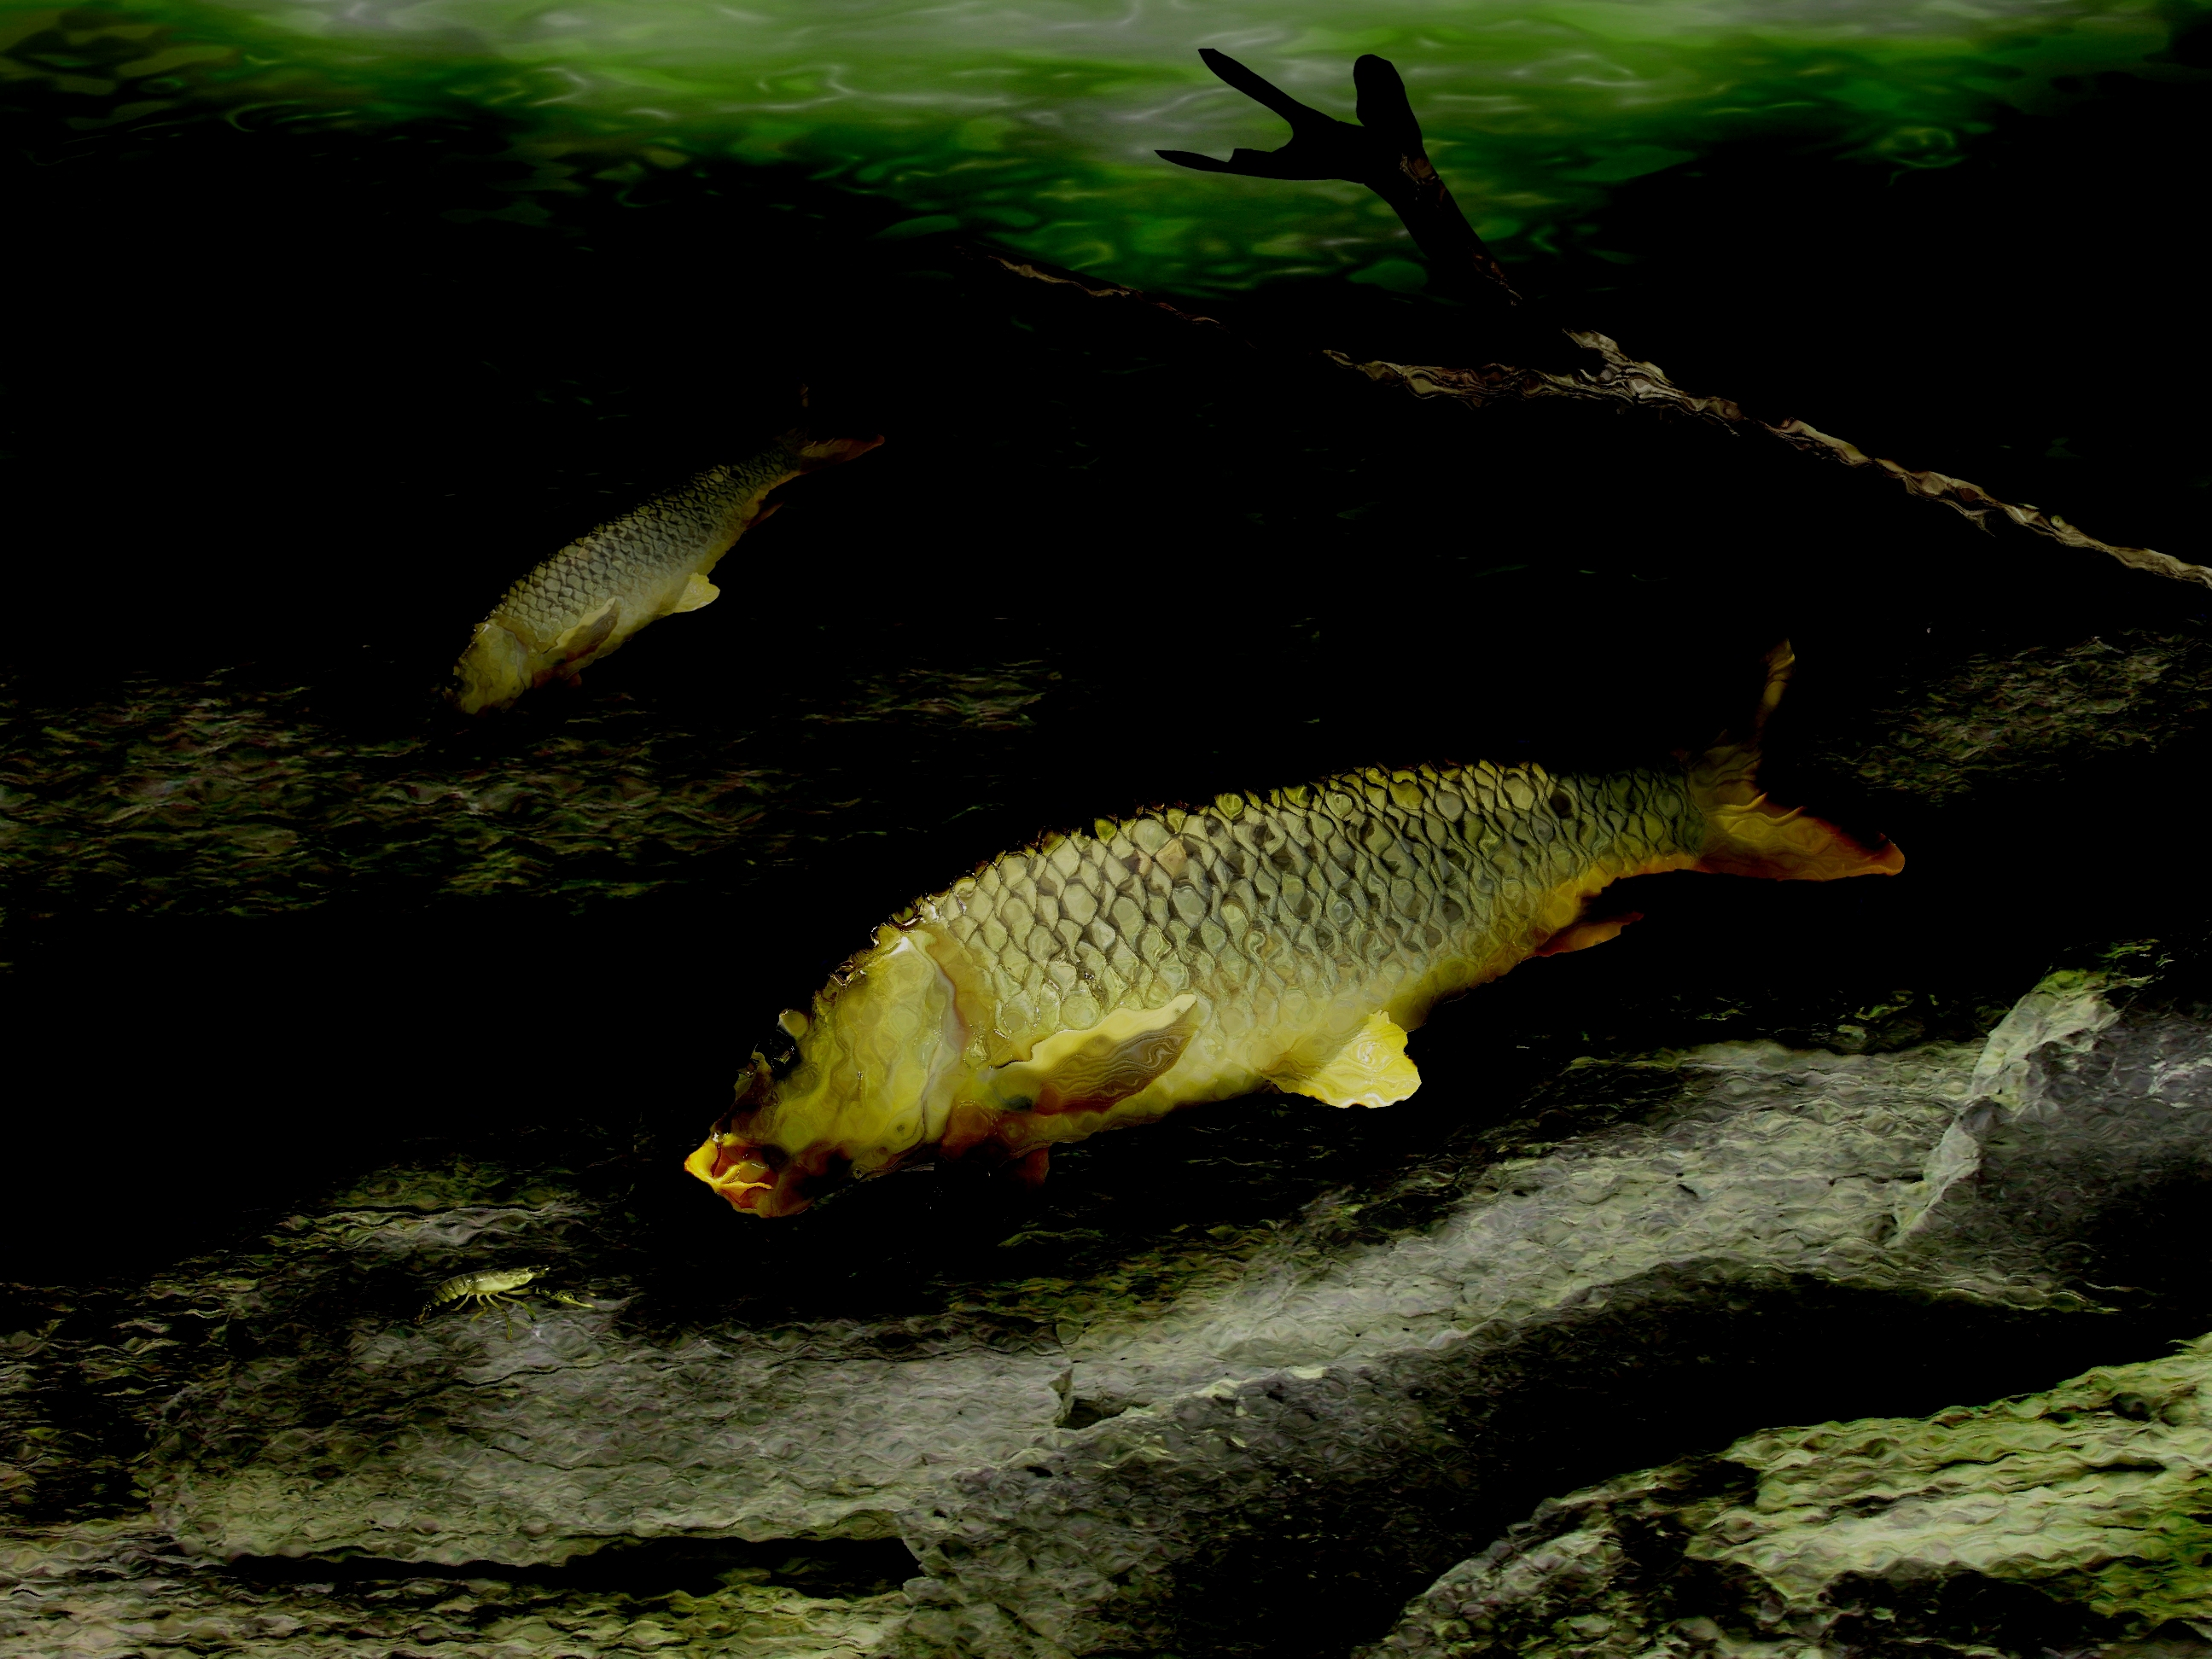 Carp on the Rocks